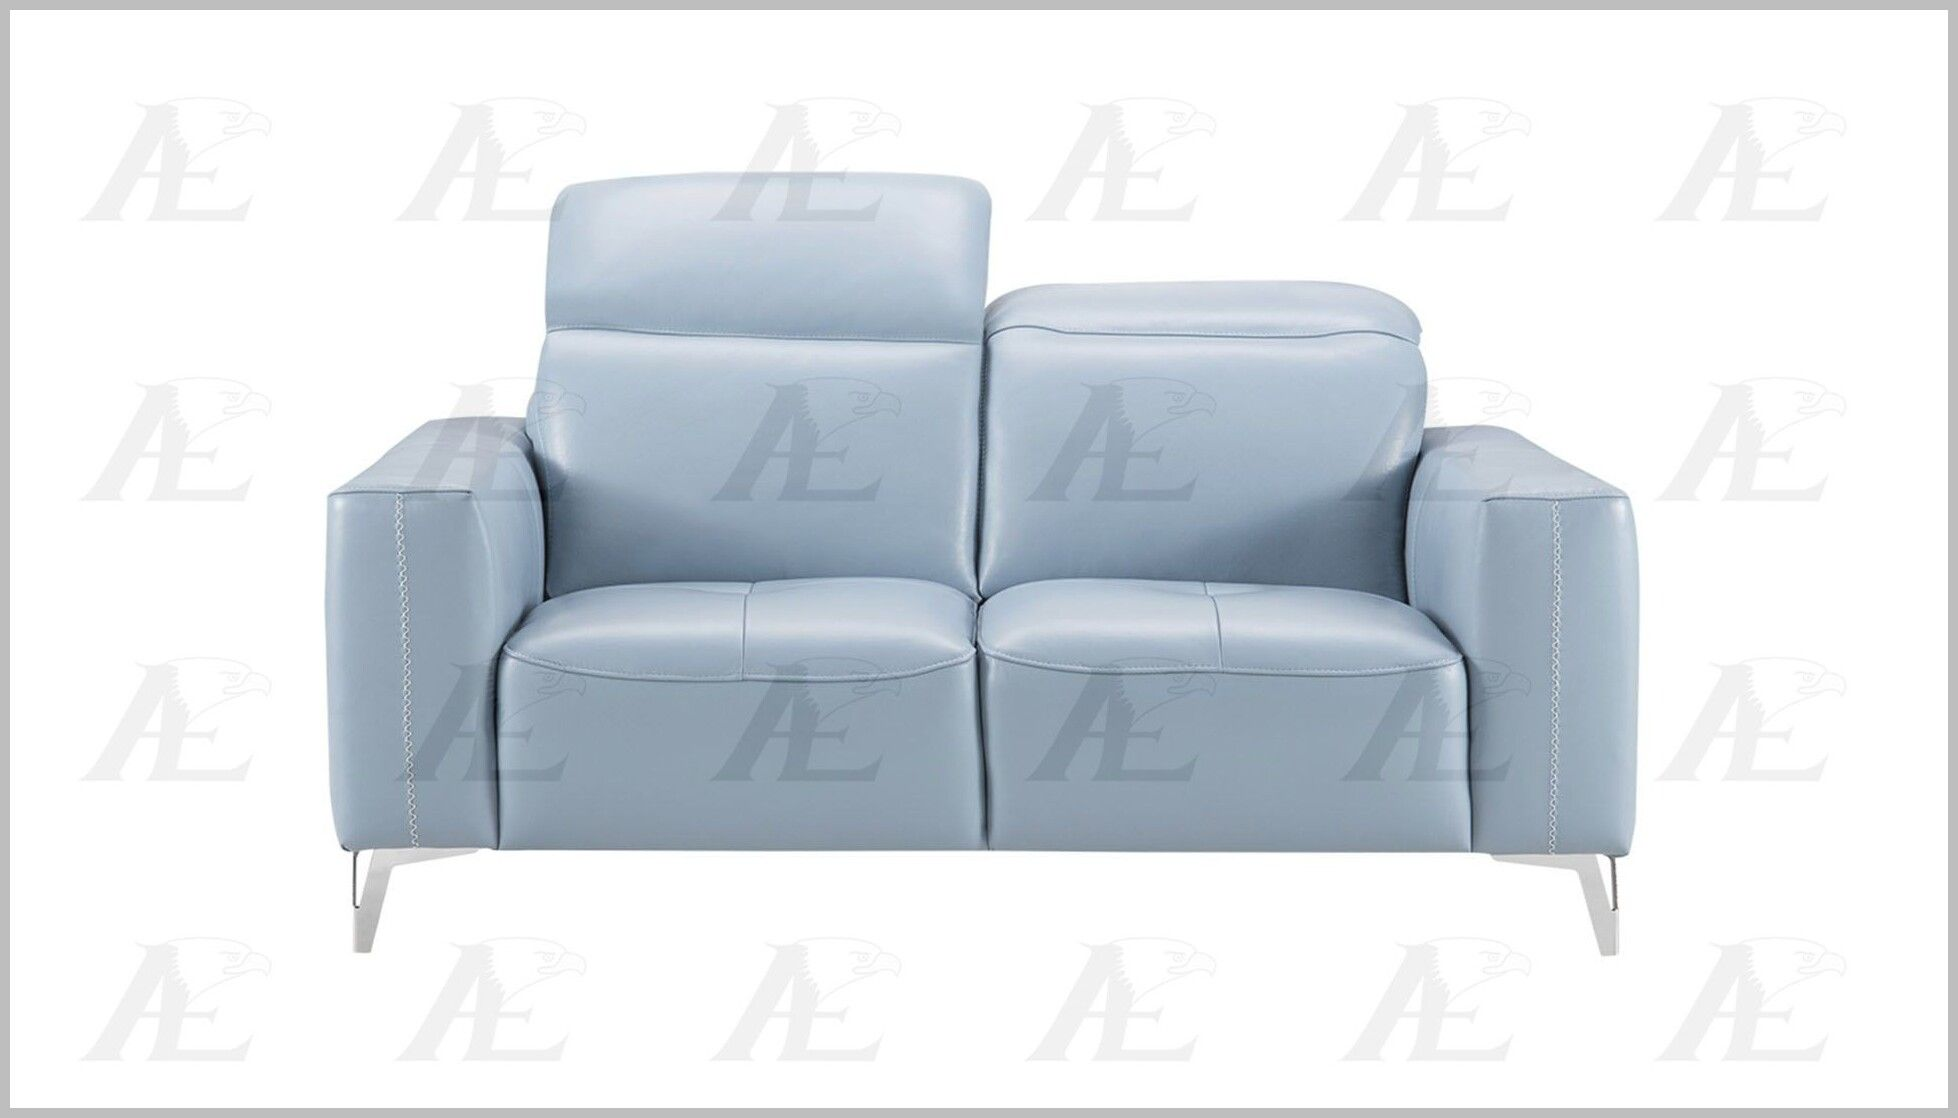 53 Reference Of Leather Sofa Light Blue In 2020 Leather Sofa Leather Sofa Set Brown Leather Sofa